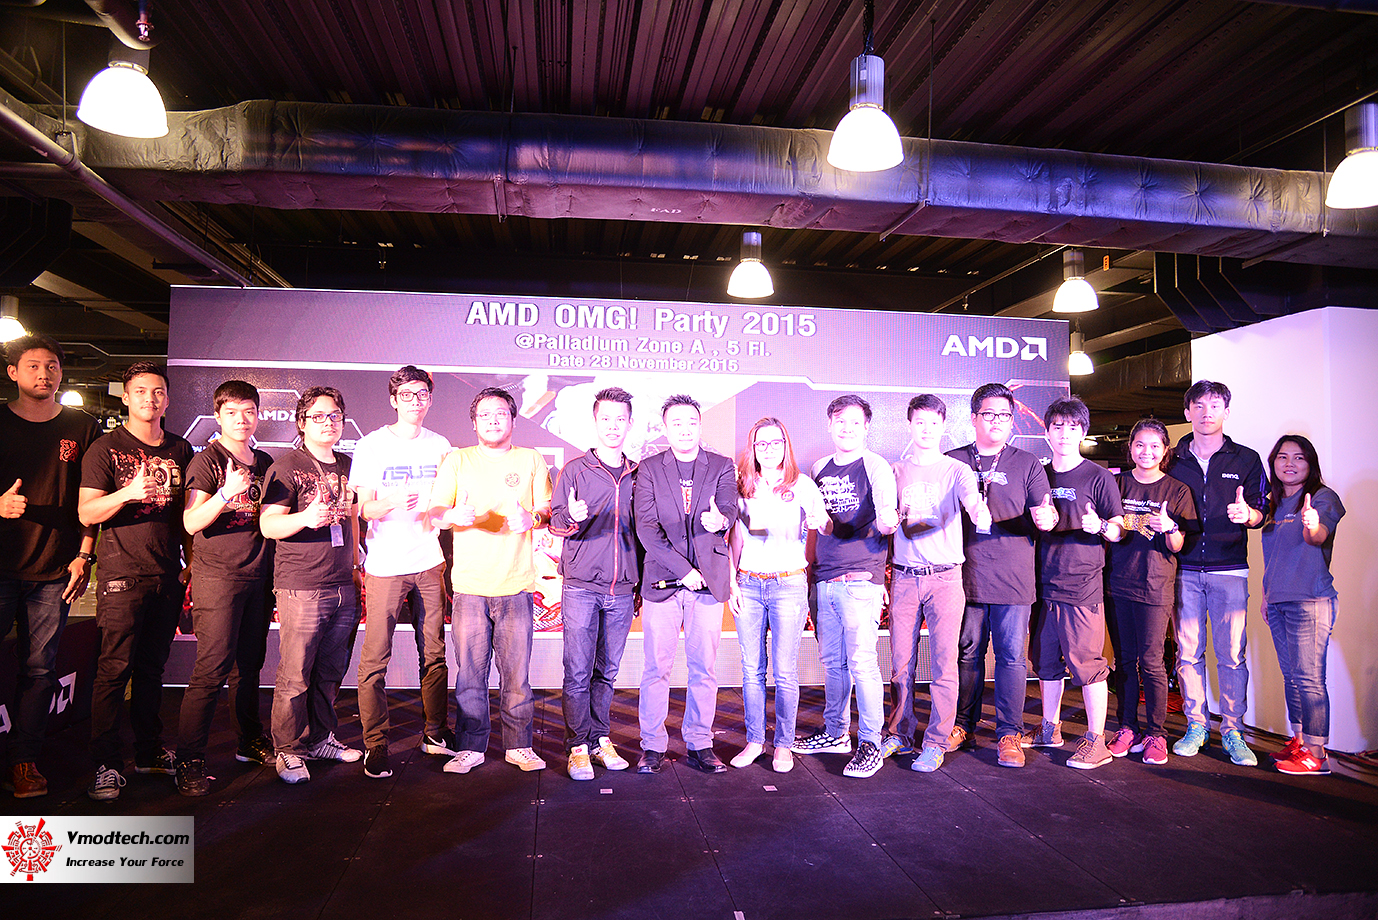 dsc 6582 AMD OMG! Party 2015 (AMD Overclock Modding Gaming Party 2015)